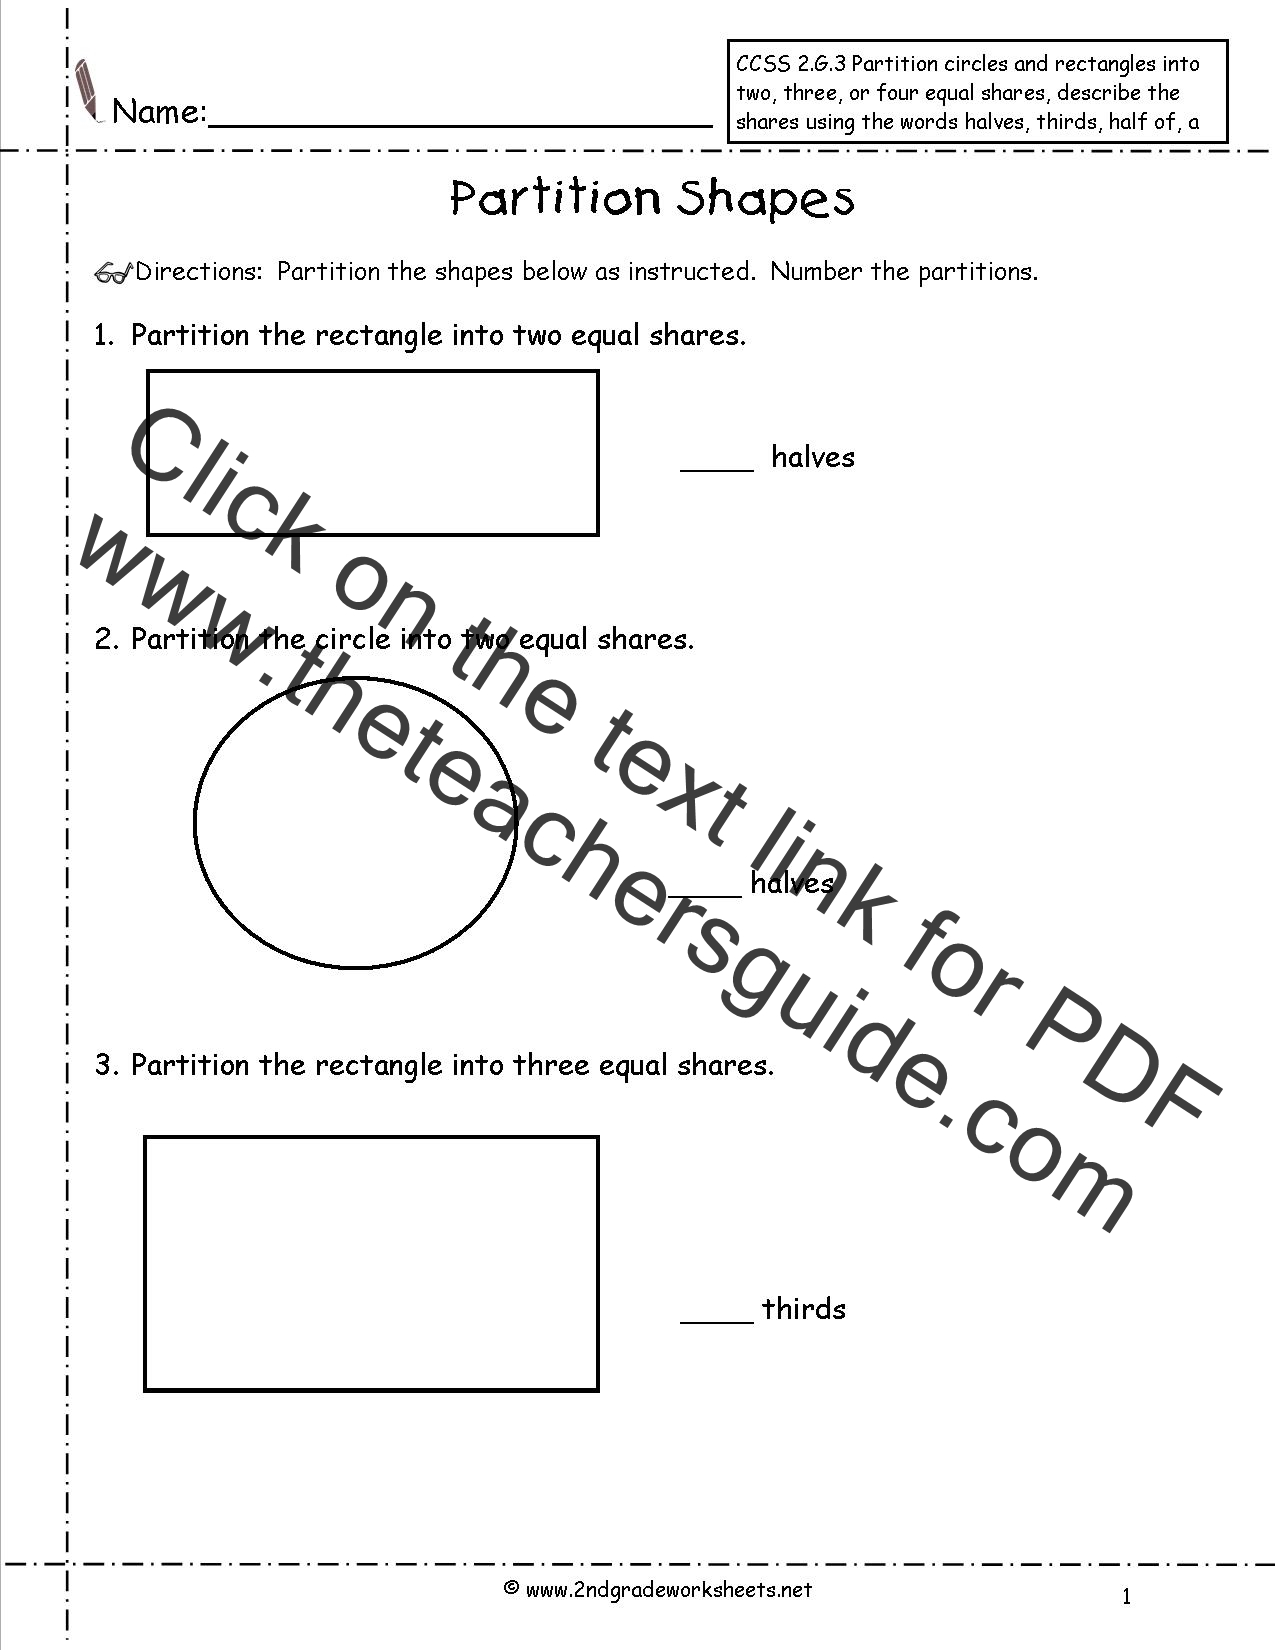 Equal Parts of a Whole Fractions Worksheets | Worksheets, Math and ...